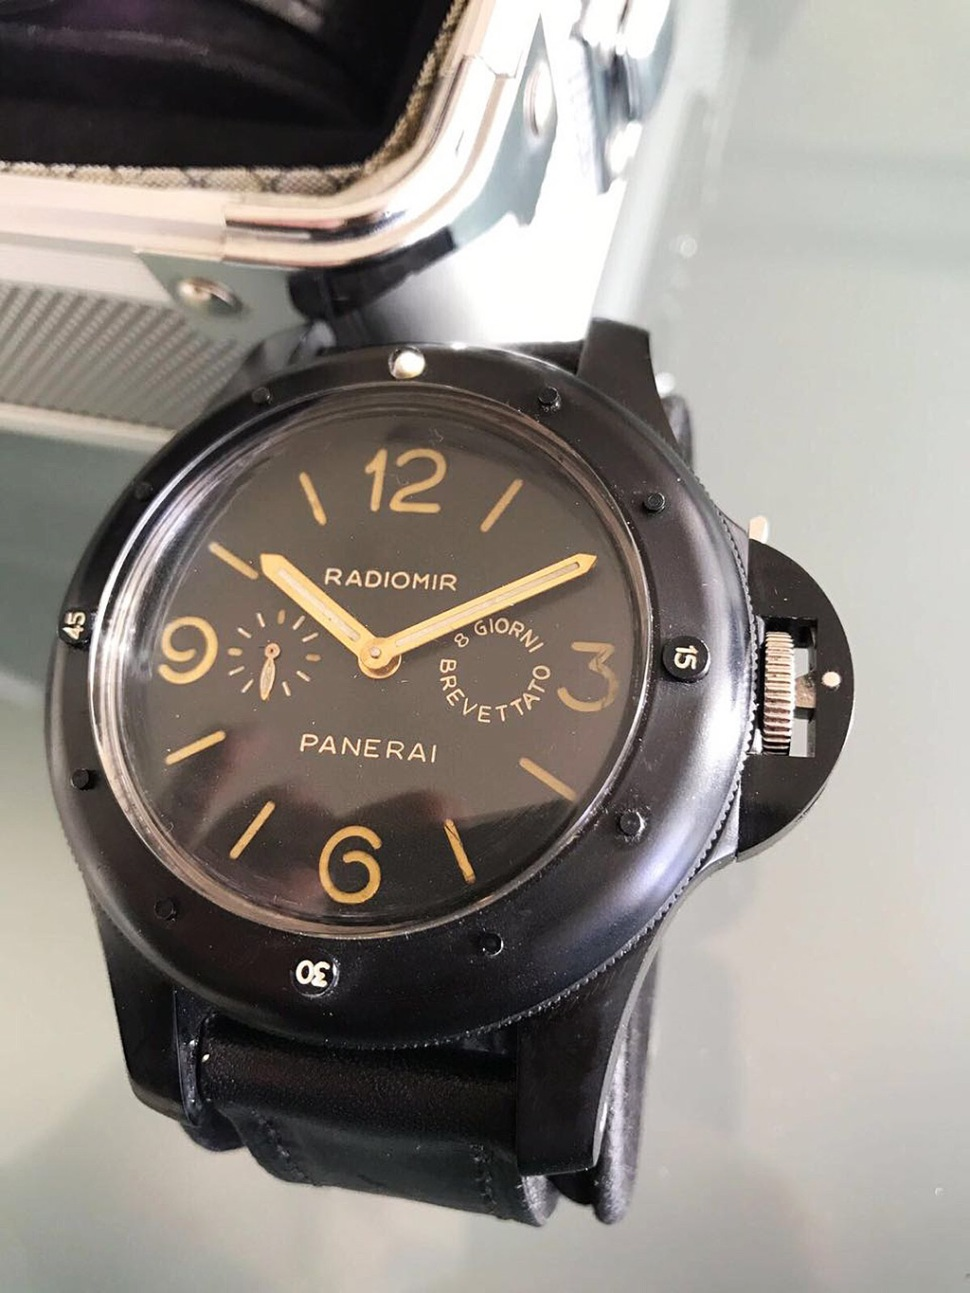 180816-panerai-5218-201-a-gold-plated-send-by-rinaldi-latest-condition